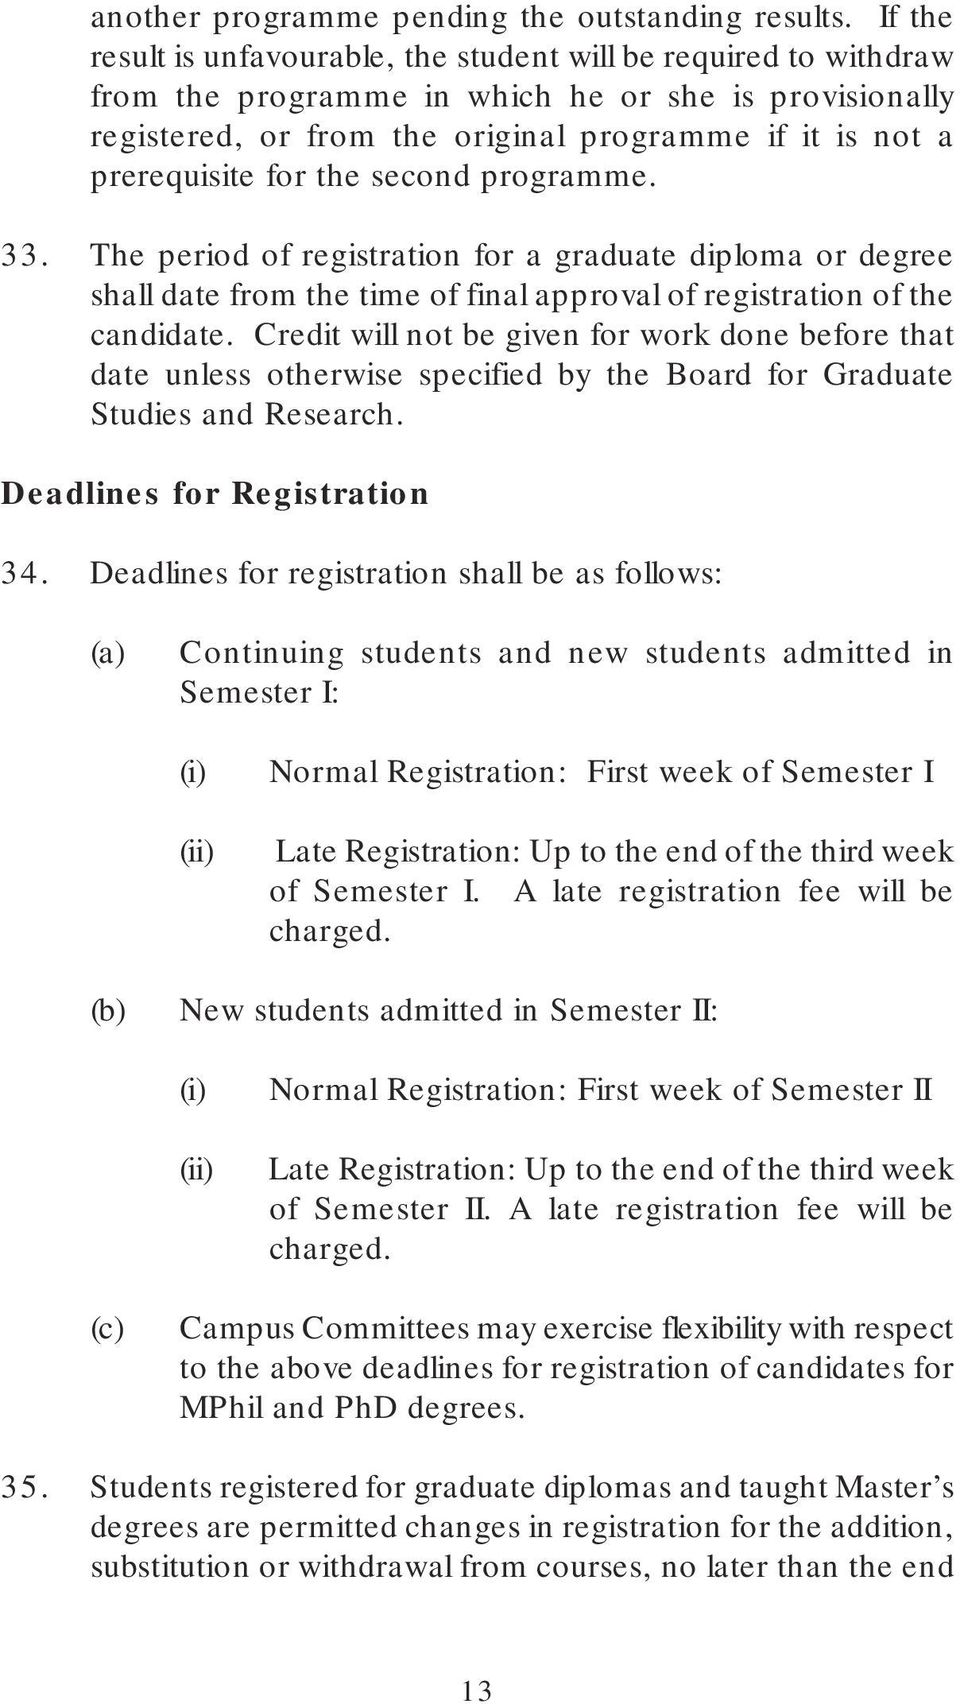 for the second programme. 33. The period of registration for a graduate diploma or degree shall date from the time of final approval of registration of the candidate.